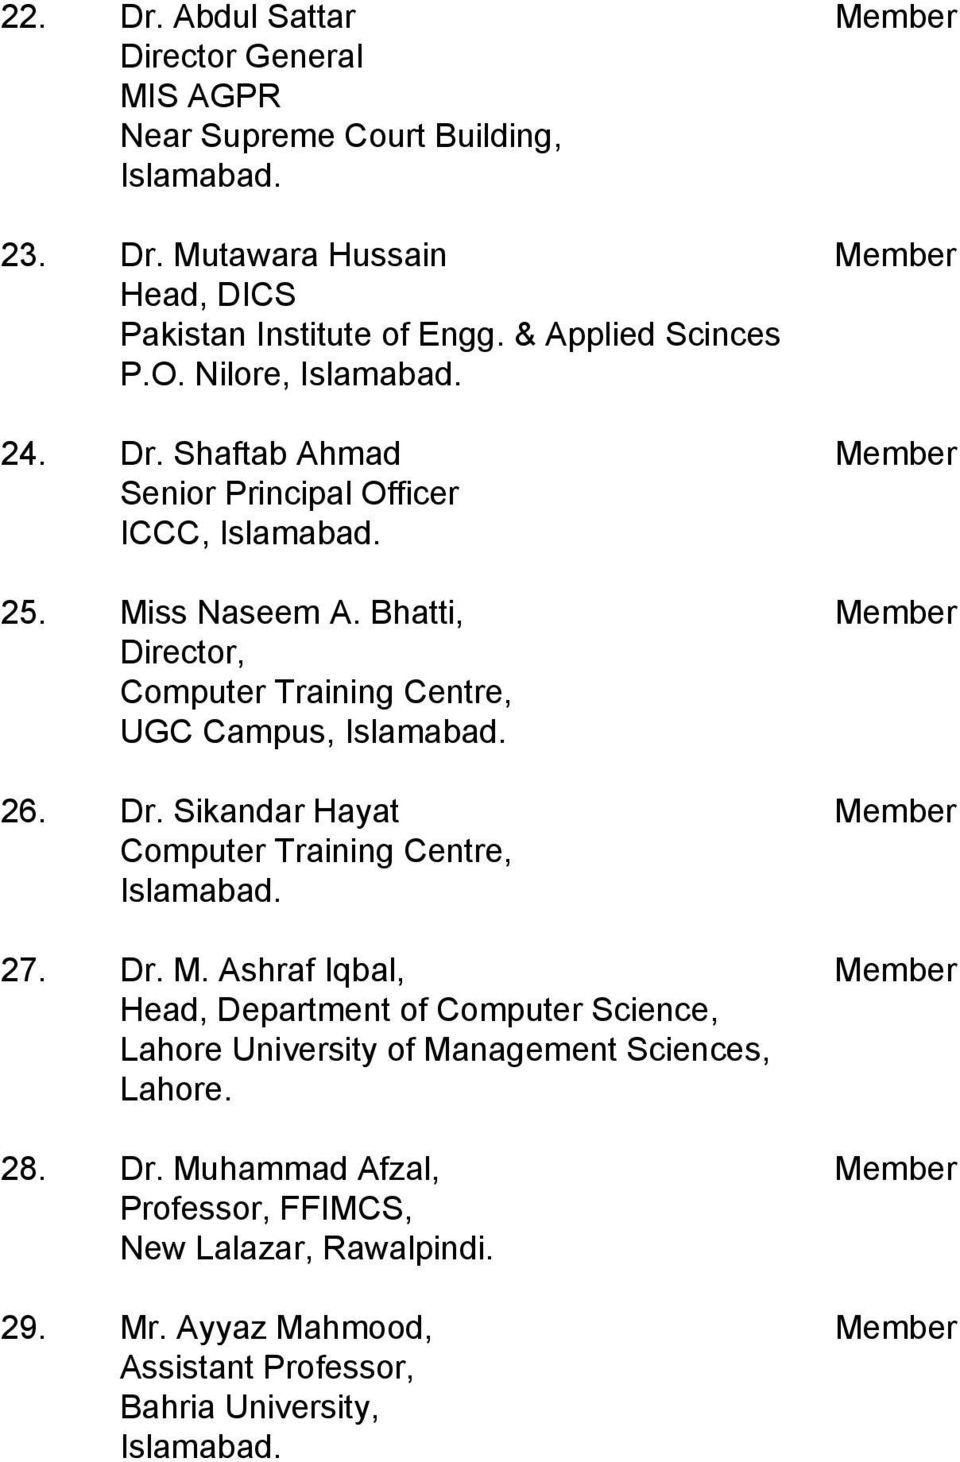 REVISED CURRICULUM OF COMPUTER SCIENCE AND INFORMATION TECHNOLOGY - PDF